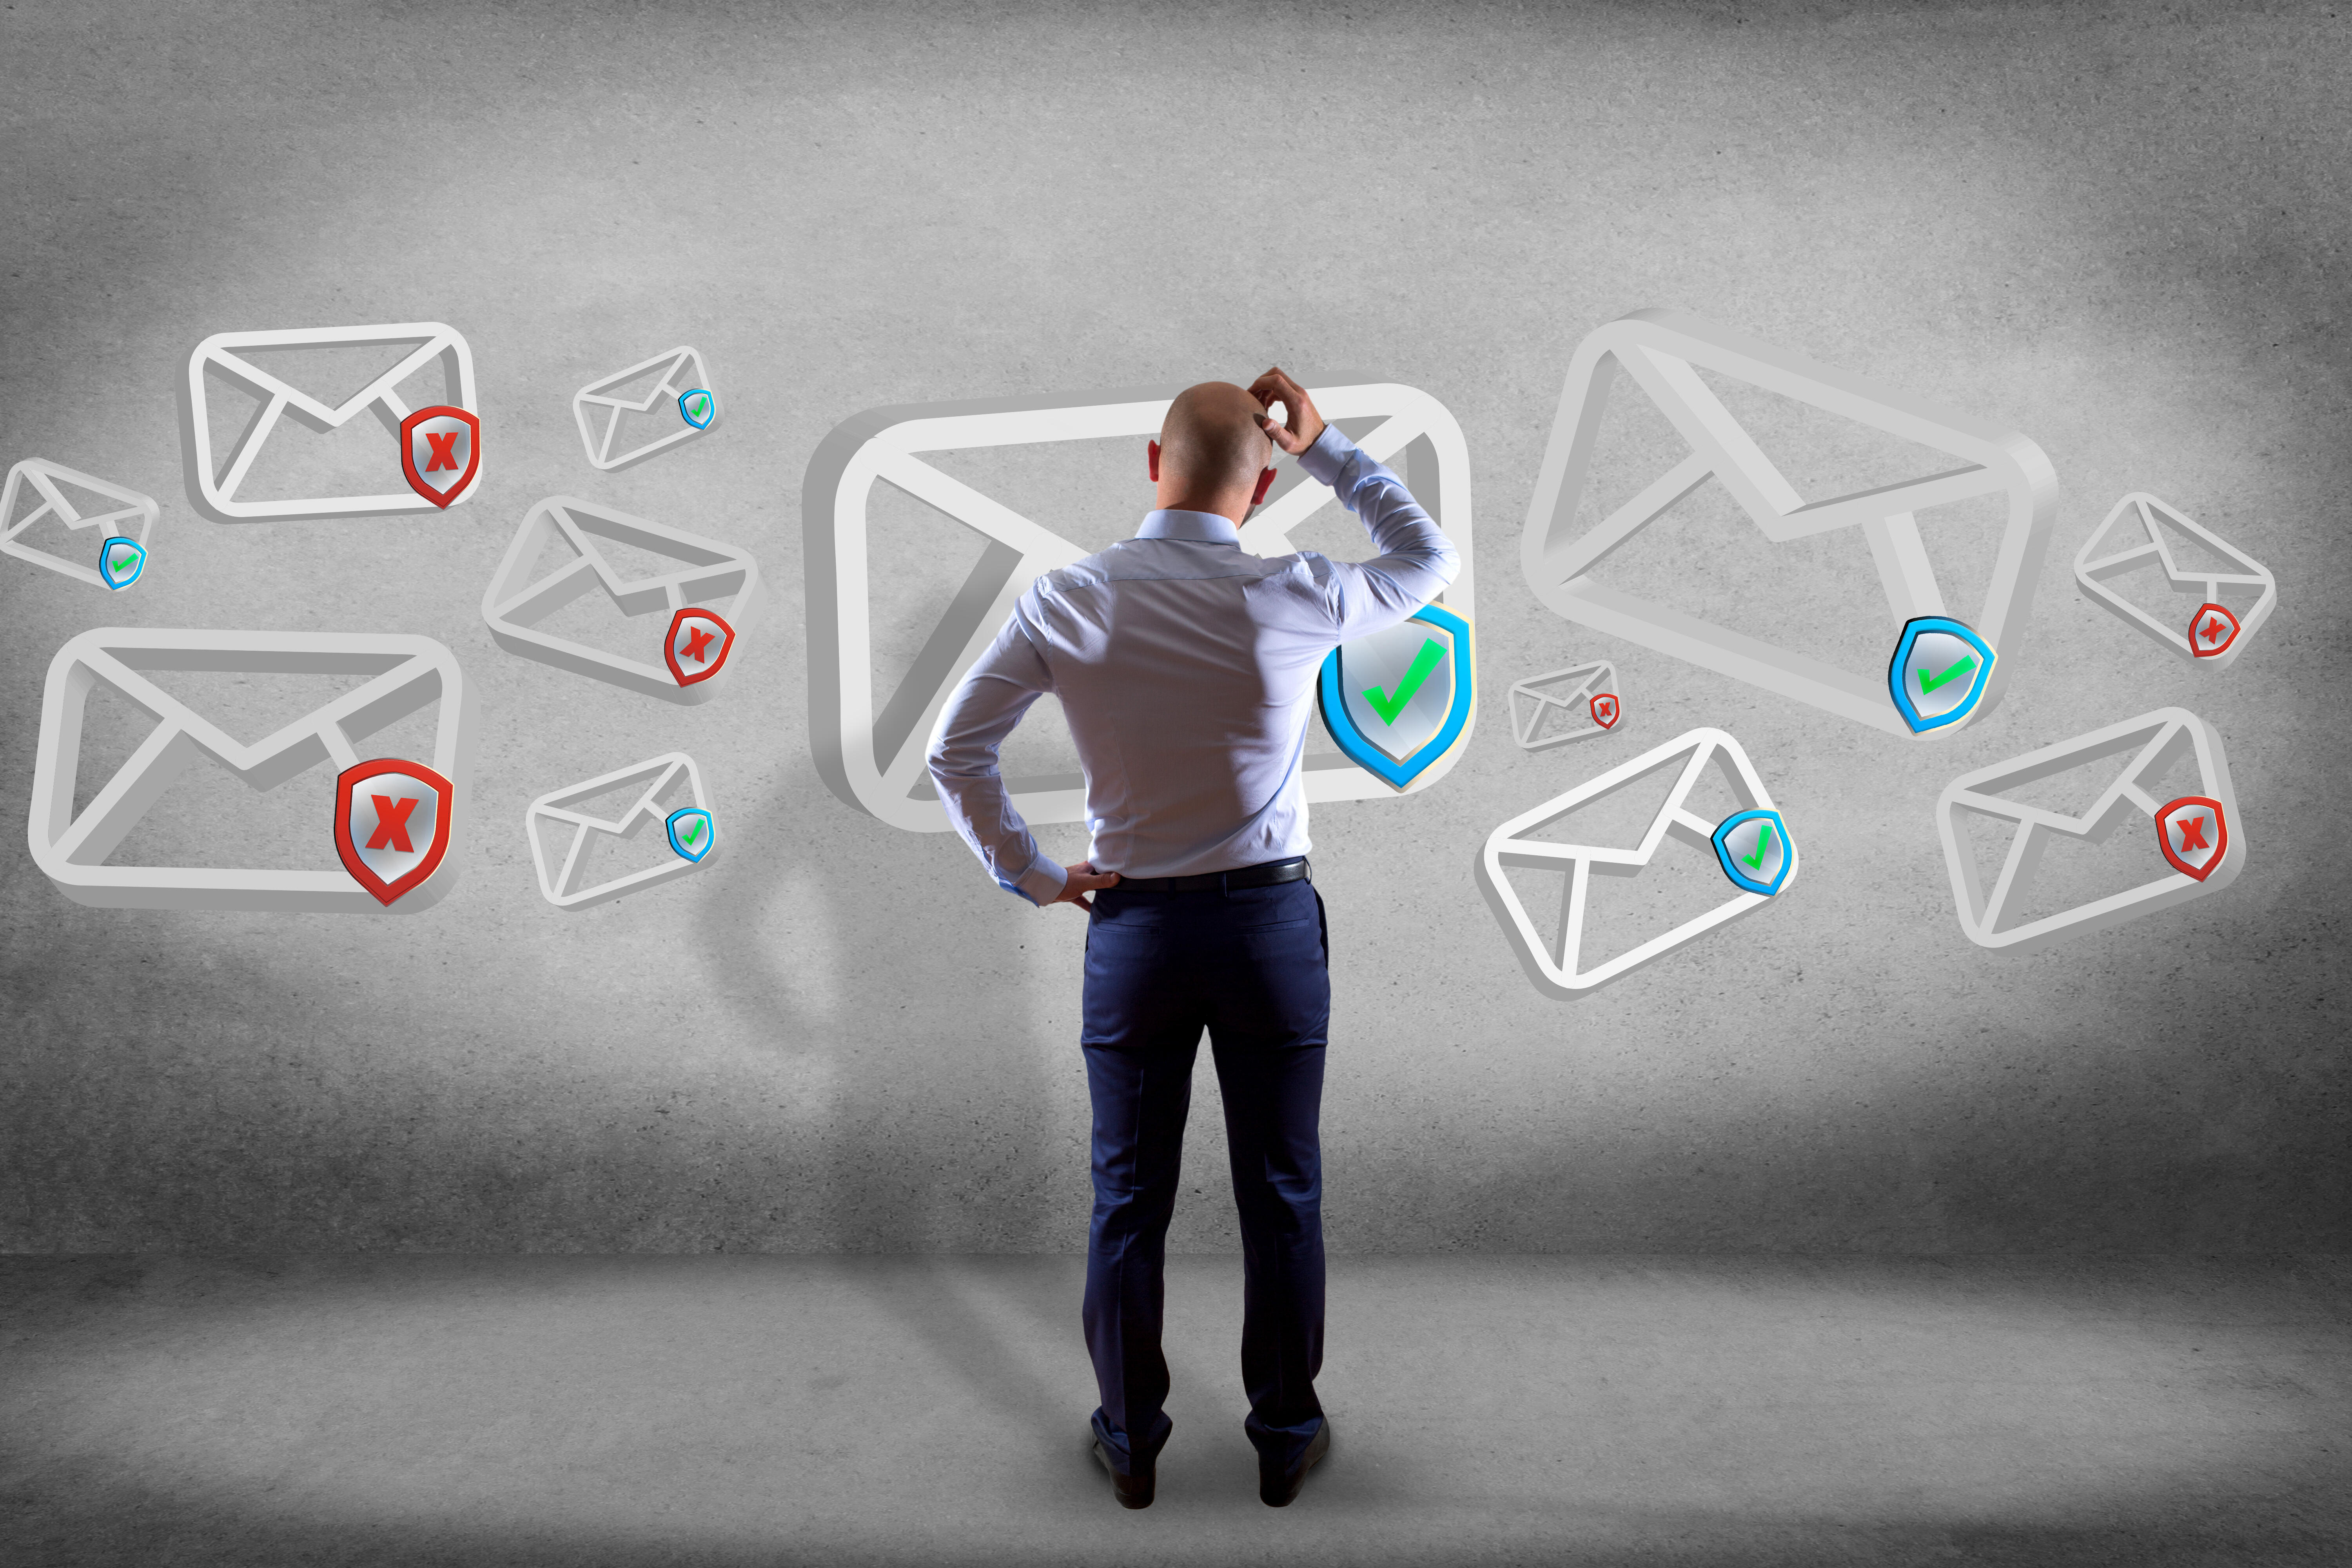 Man viewed from behind looking at email icons in air